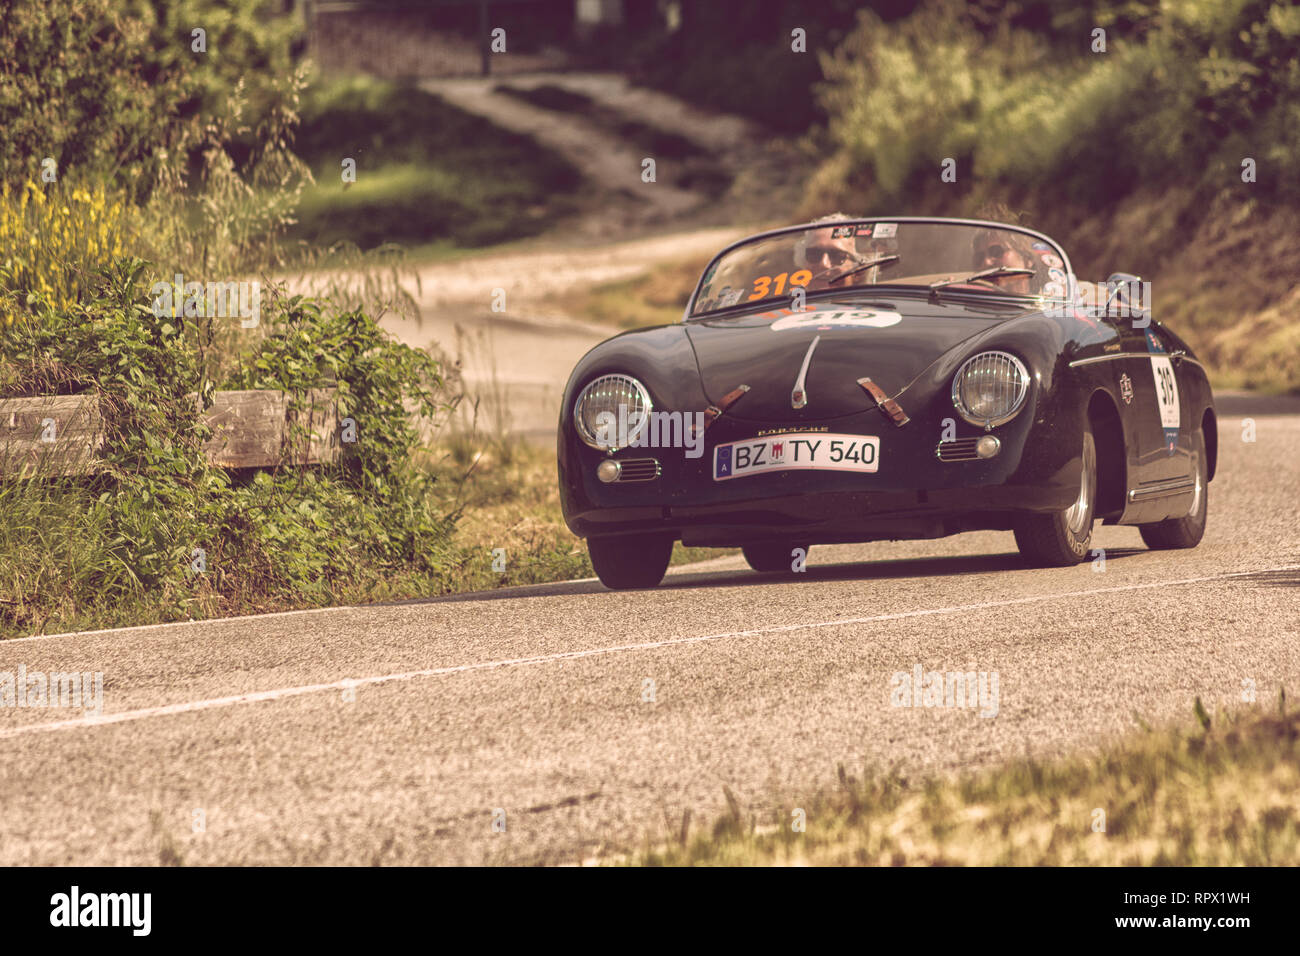 PORSCHE 356 1500 SPEEDSTER 1954 on an old racing car in rally Mille Miglia 2018 the famous italian historical race (1927-1957) - Stock Image